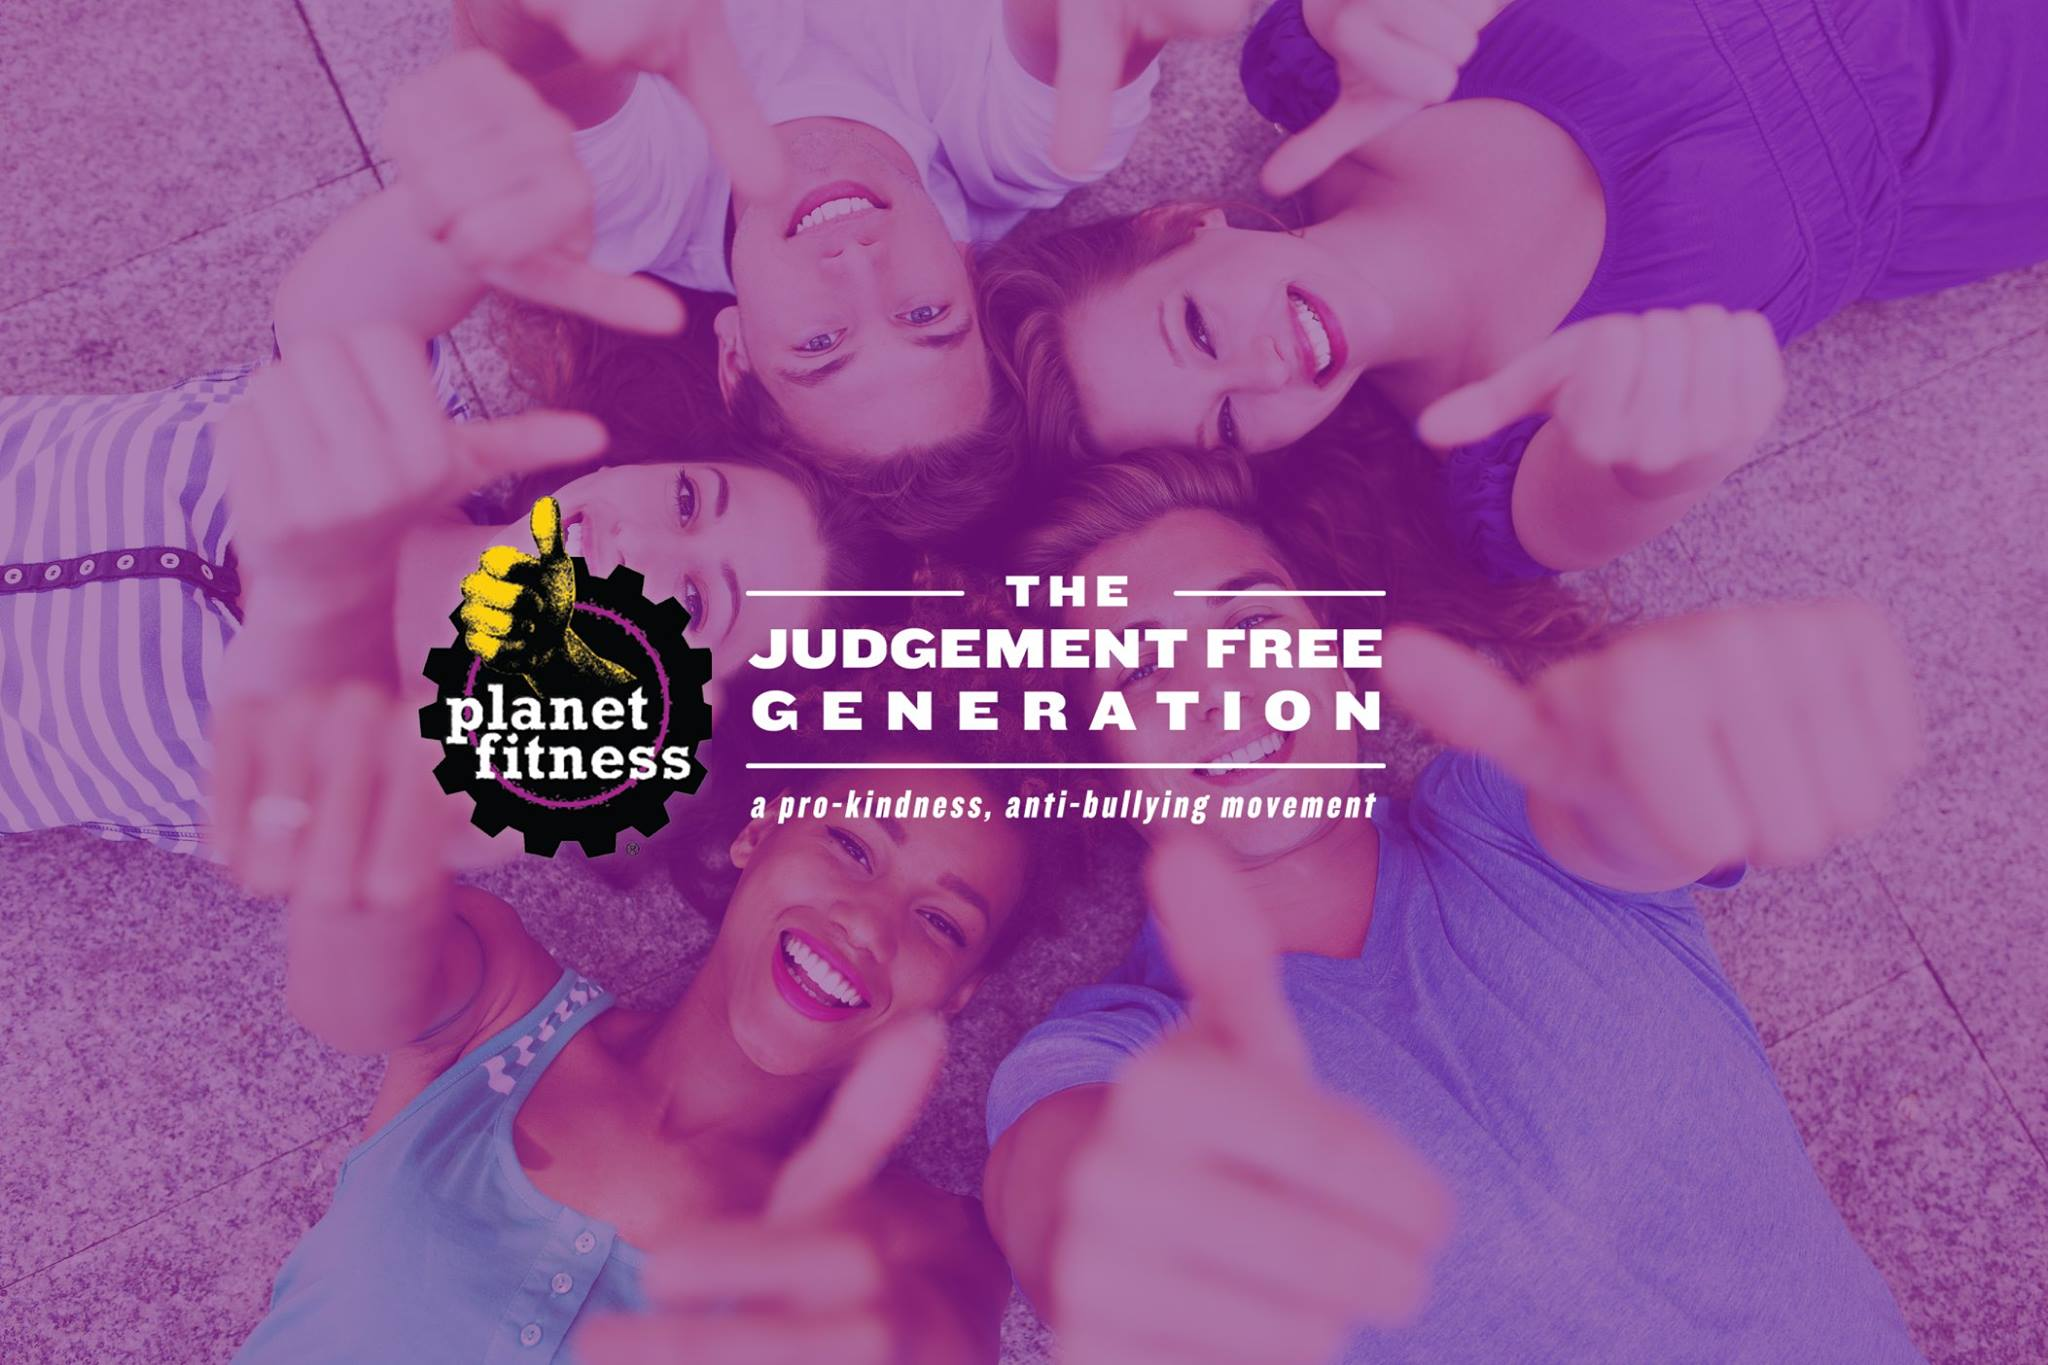 Planet Fitness Judgement free zone